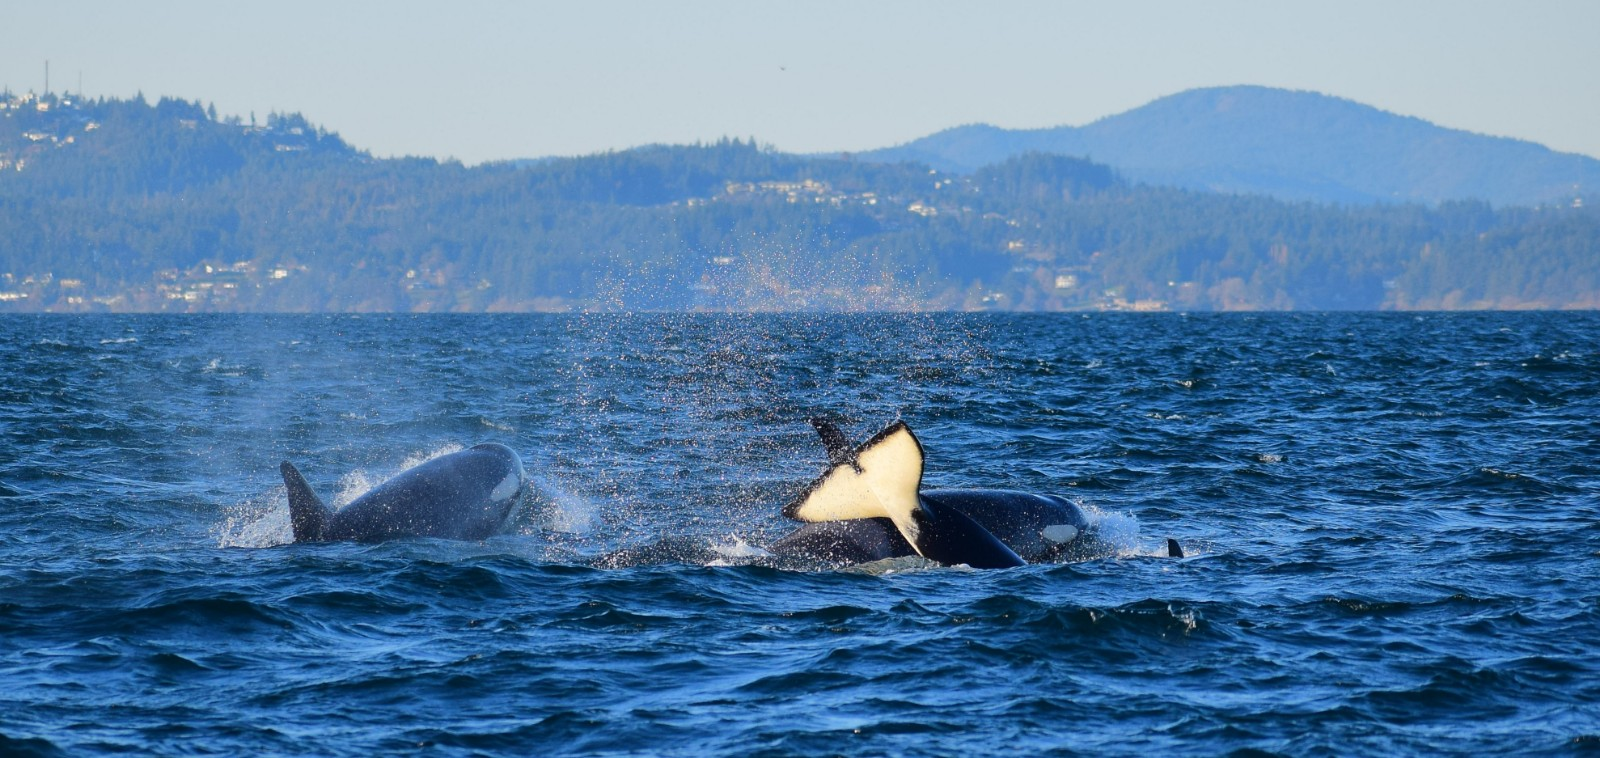 Orca tail slapping. Picture taken by Captain Ian with a zoom lens.